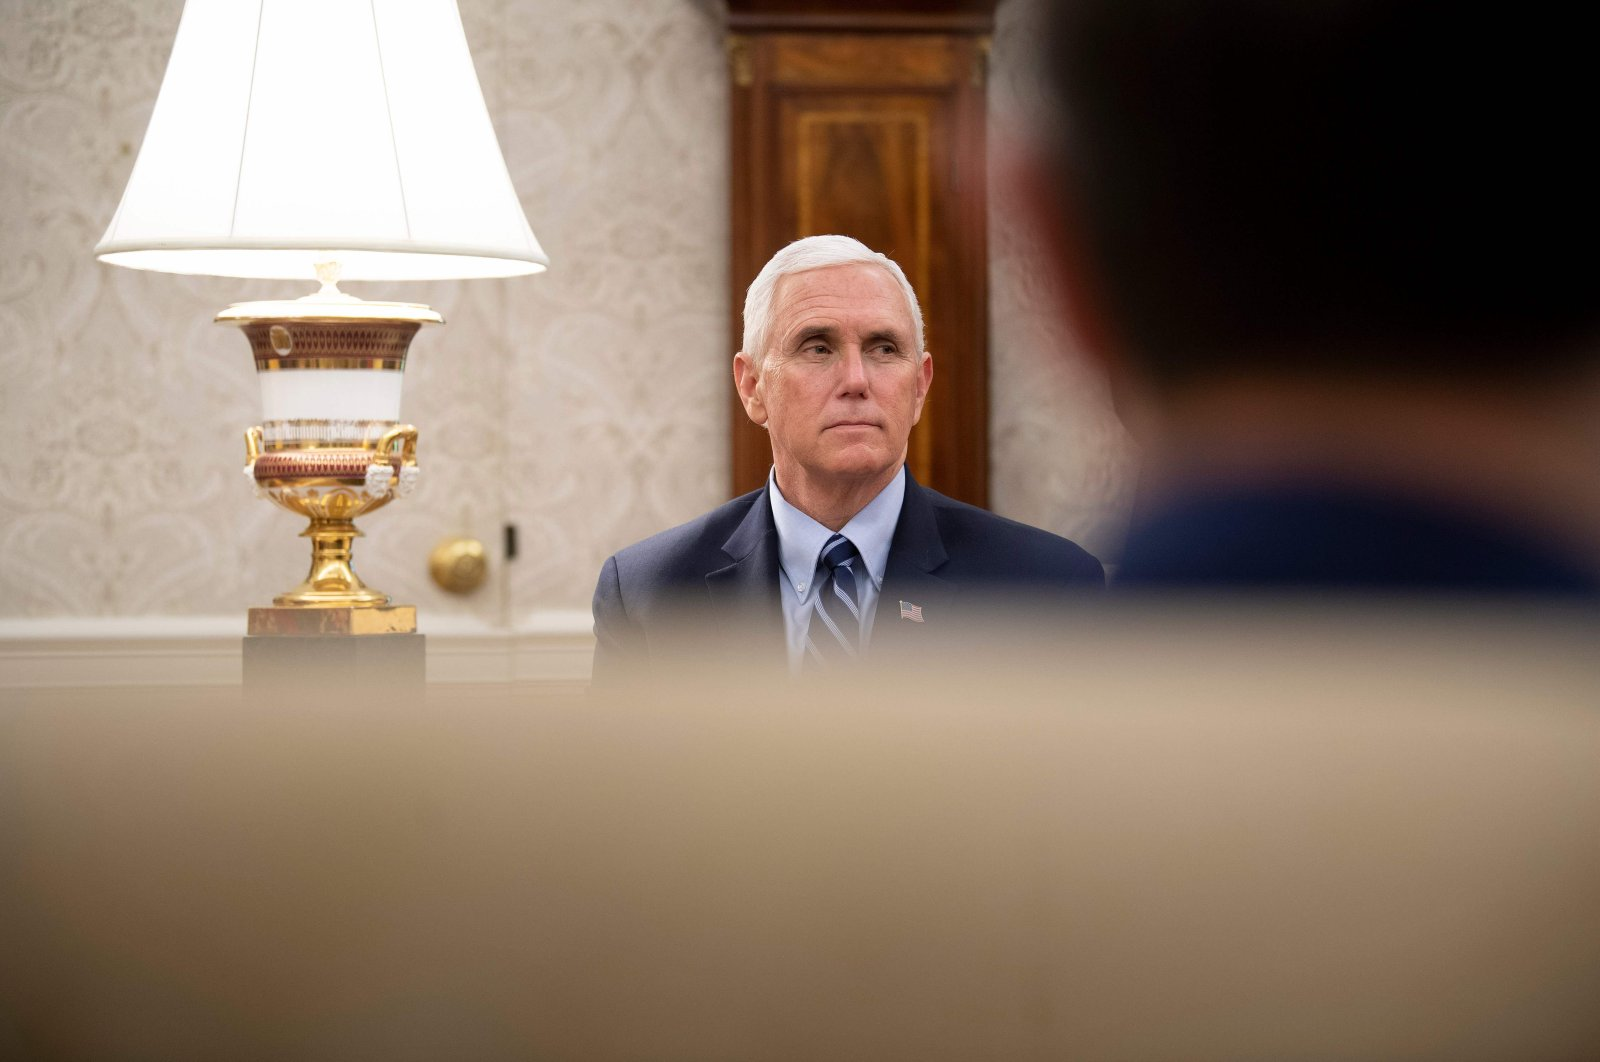 U.S. Vice President Mike Pence listens as Texas's Governor Greg Abbott and U.S. President Donald Trump speak to the press after a meeting in the Oval Office of the White House May 7, 2020, in Washington, DC. (AFP Photo)